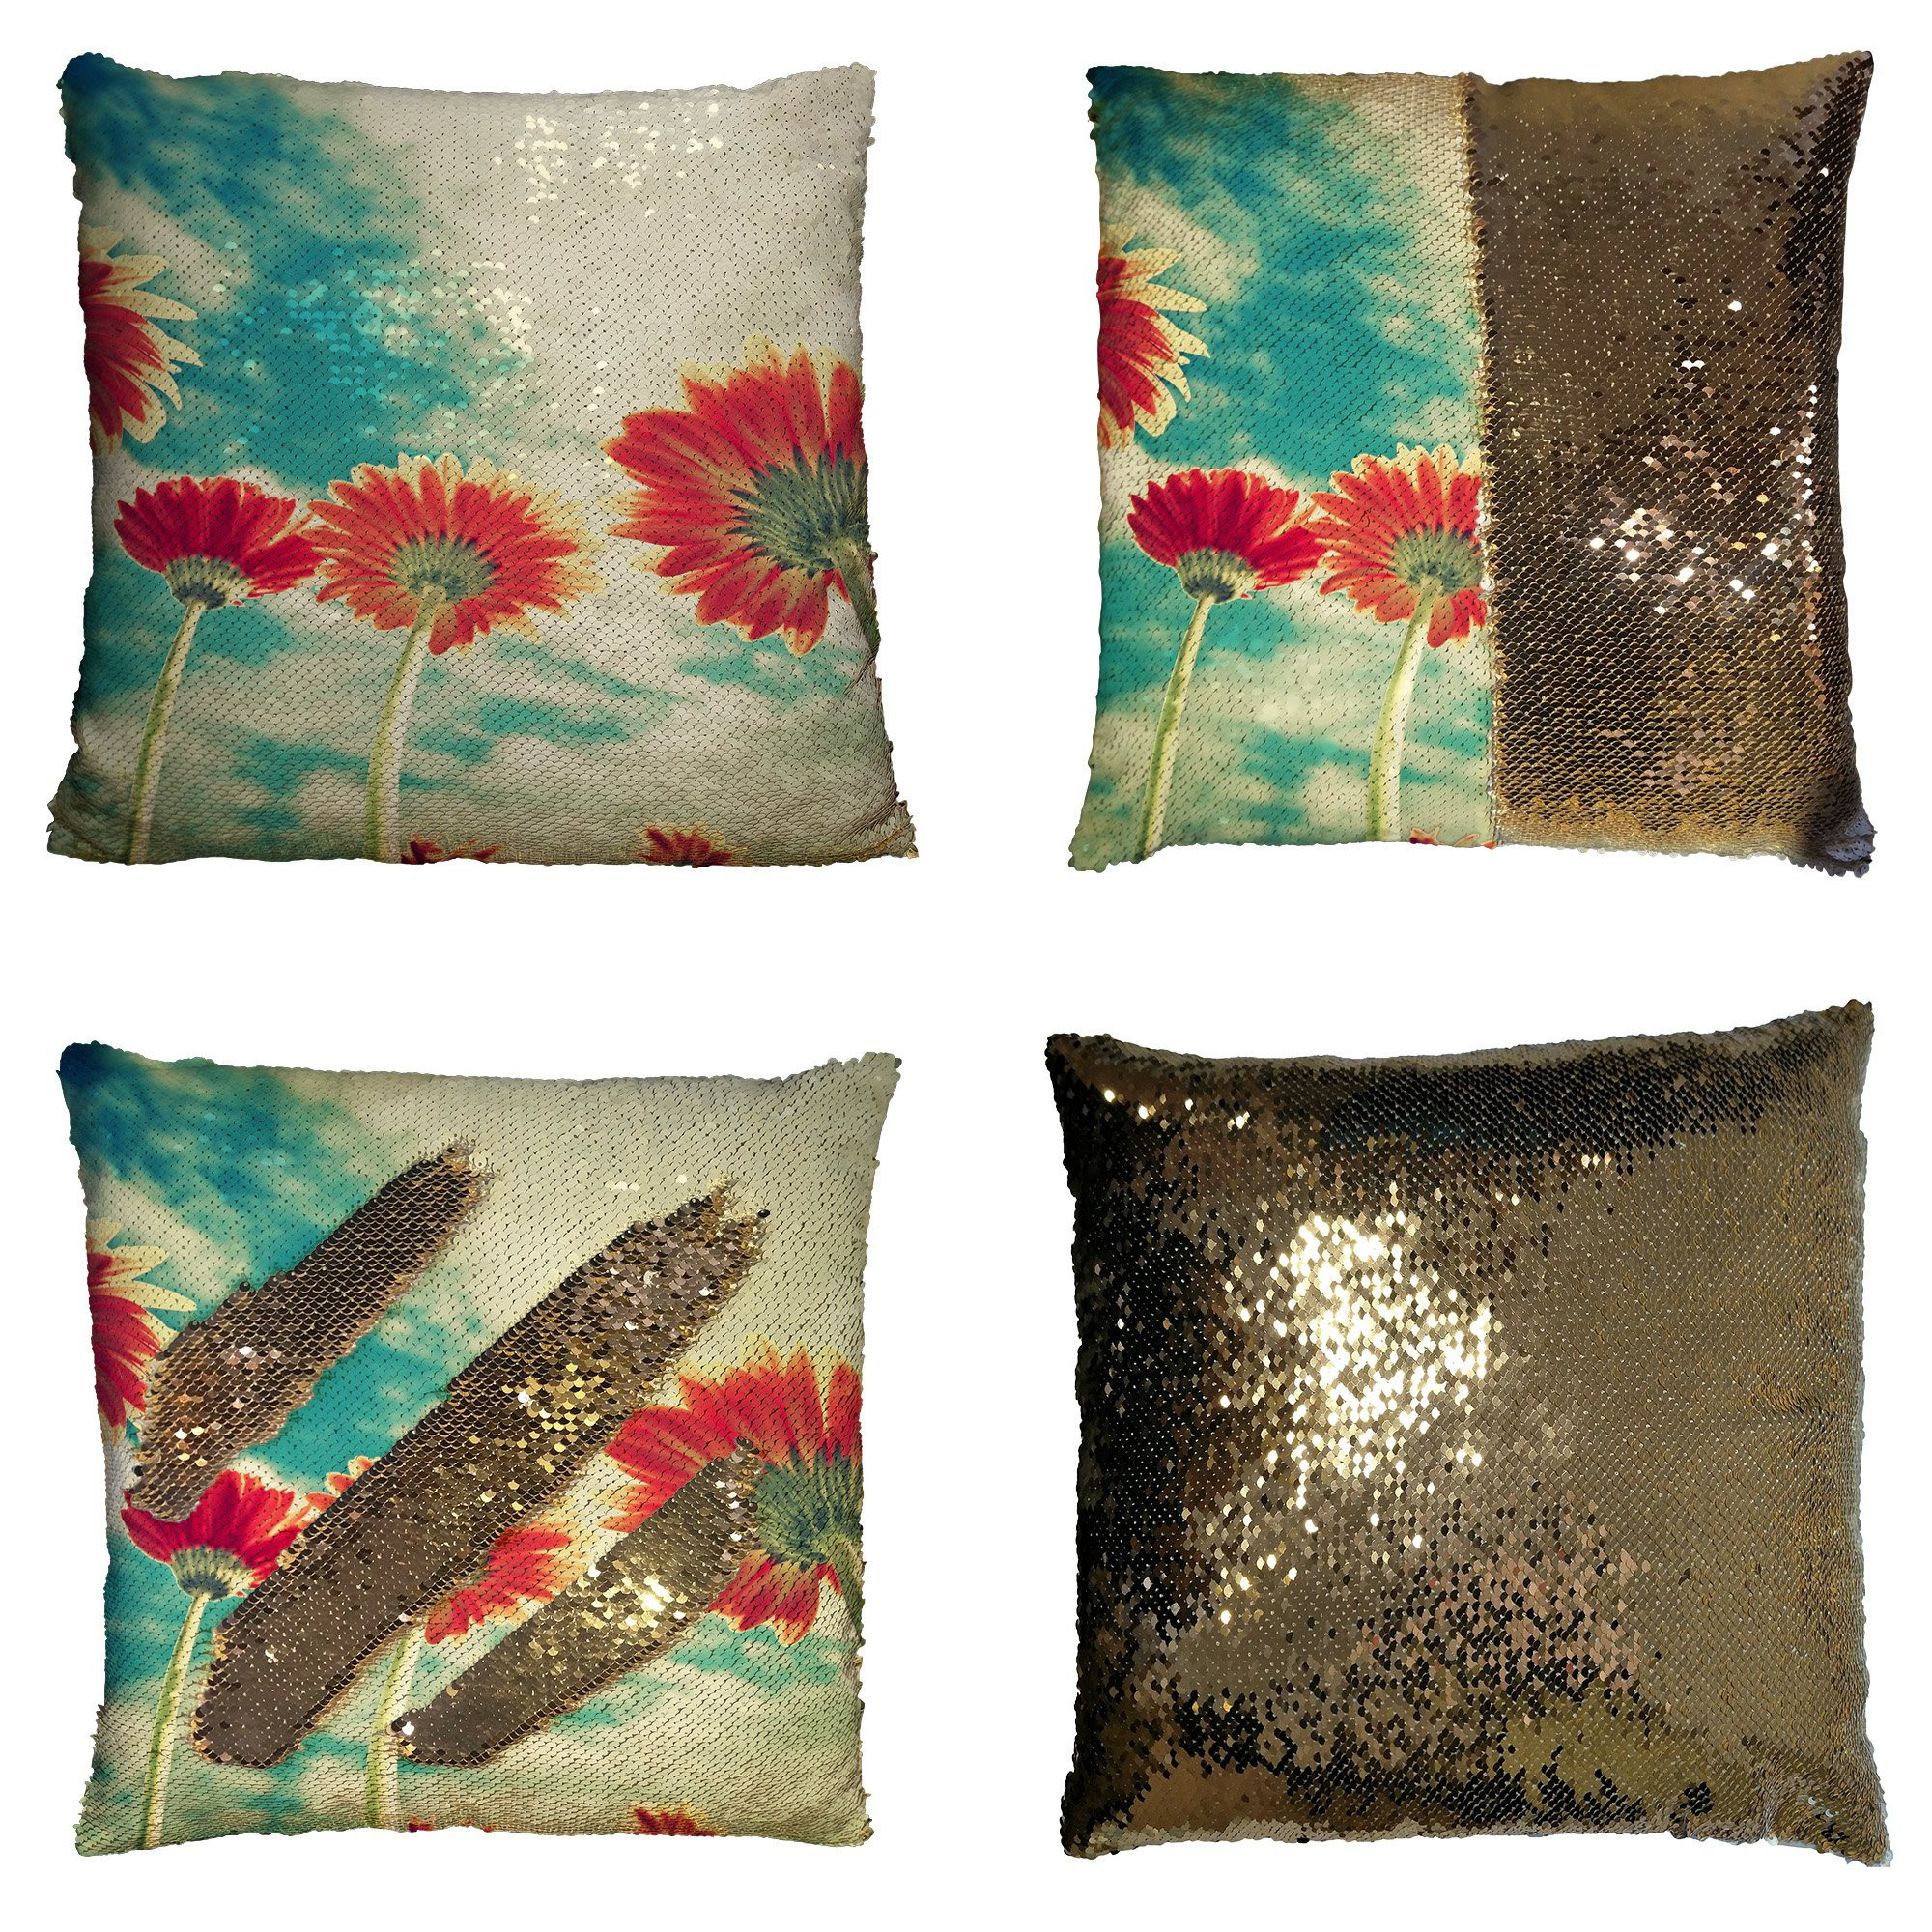 GCKG Summer Landscape Pillowcase, Red Sunflower under the Bule Sky Reversible Mermaid Sequin Pillow Case Home Decor Cushion Cover 16x16 inches